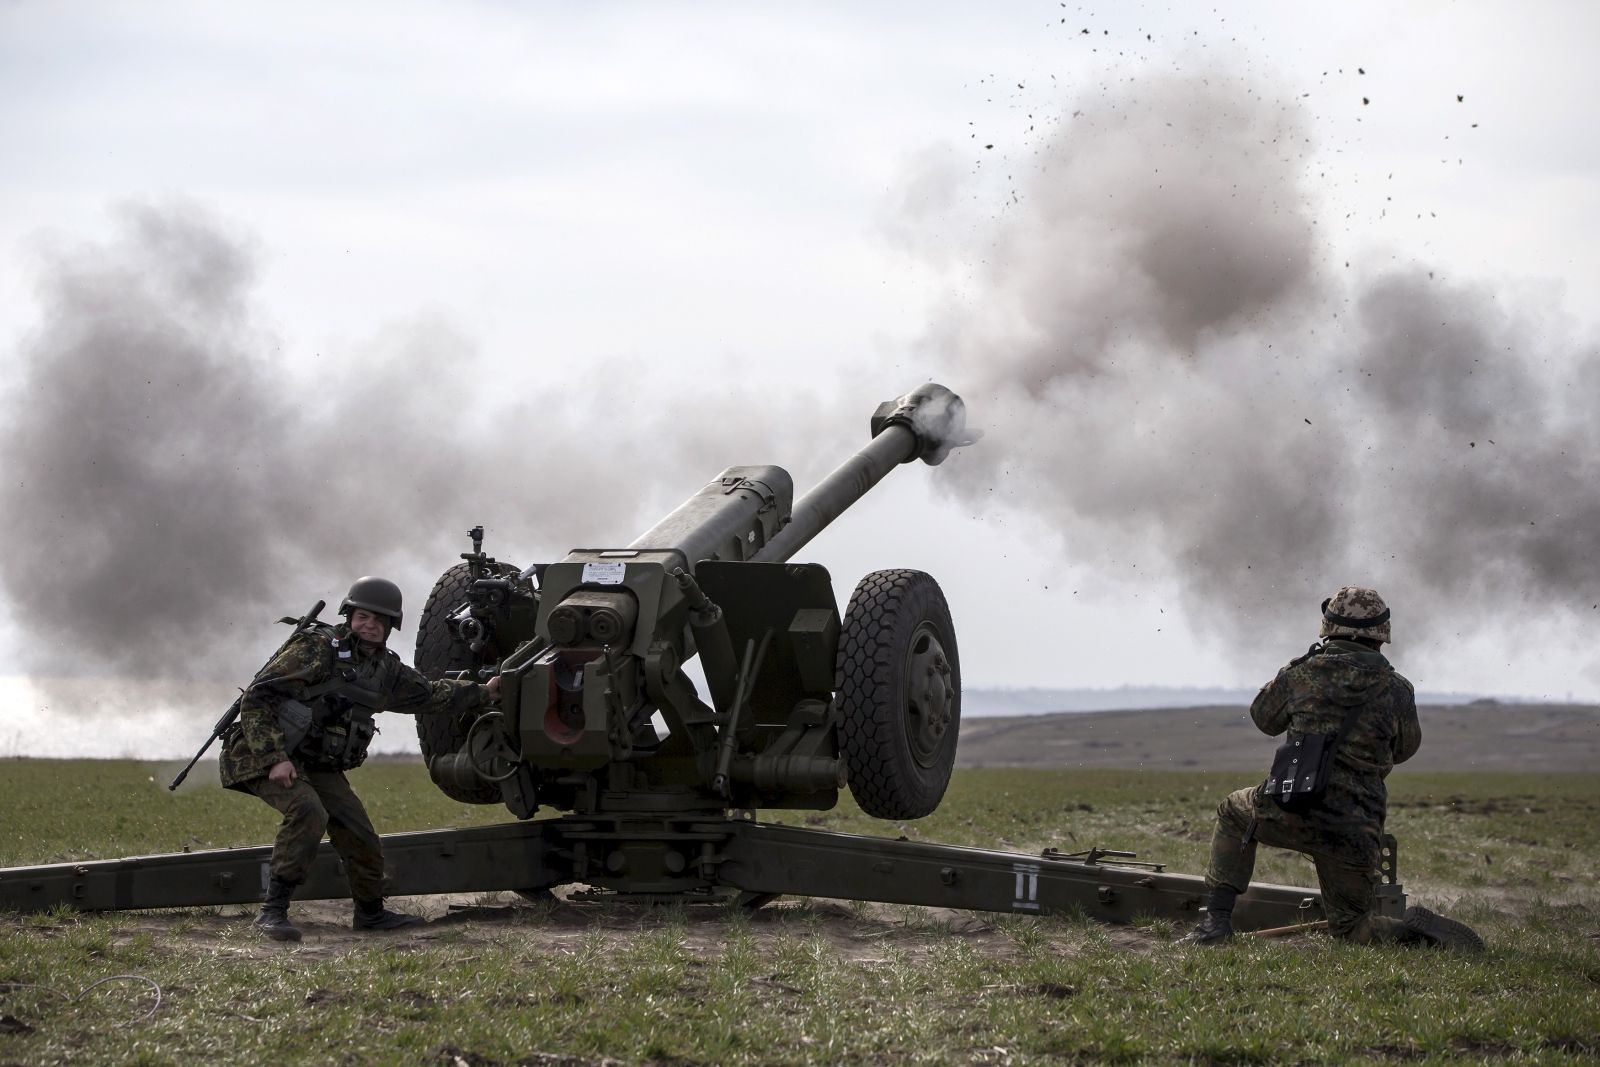 Return to heavy fighting in Ukraine